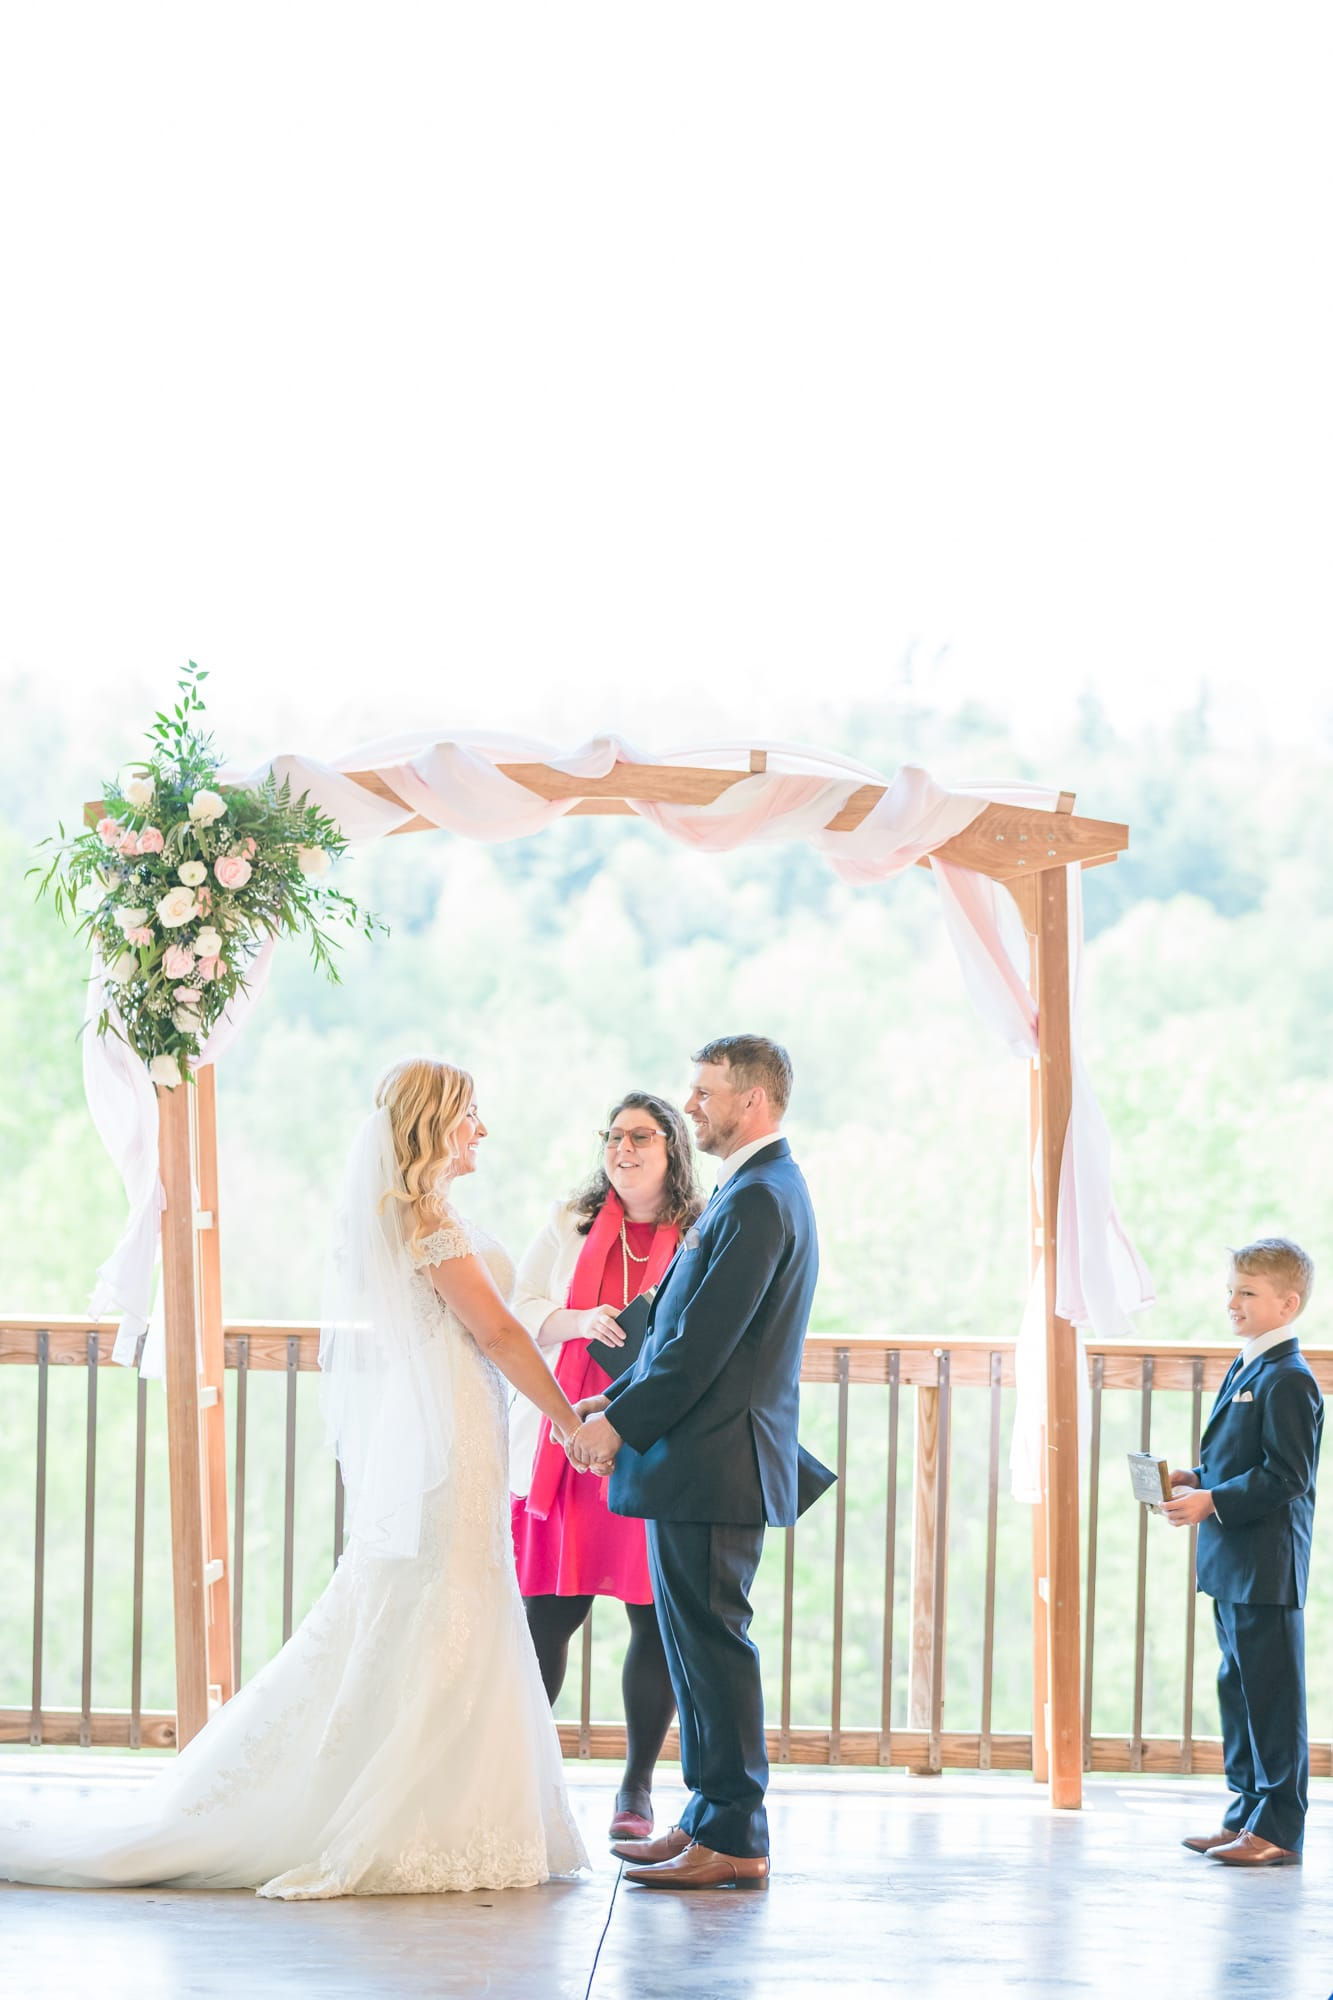 Vow exchange at Rolling Rails Lodge wedding ceremony